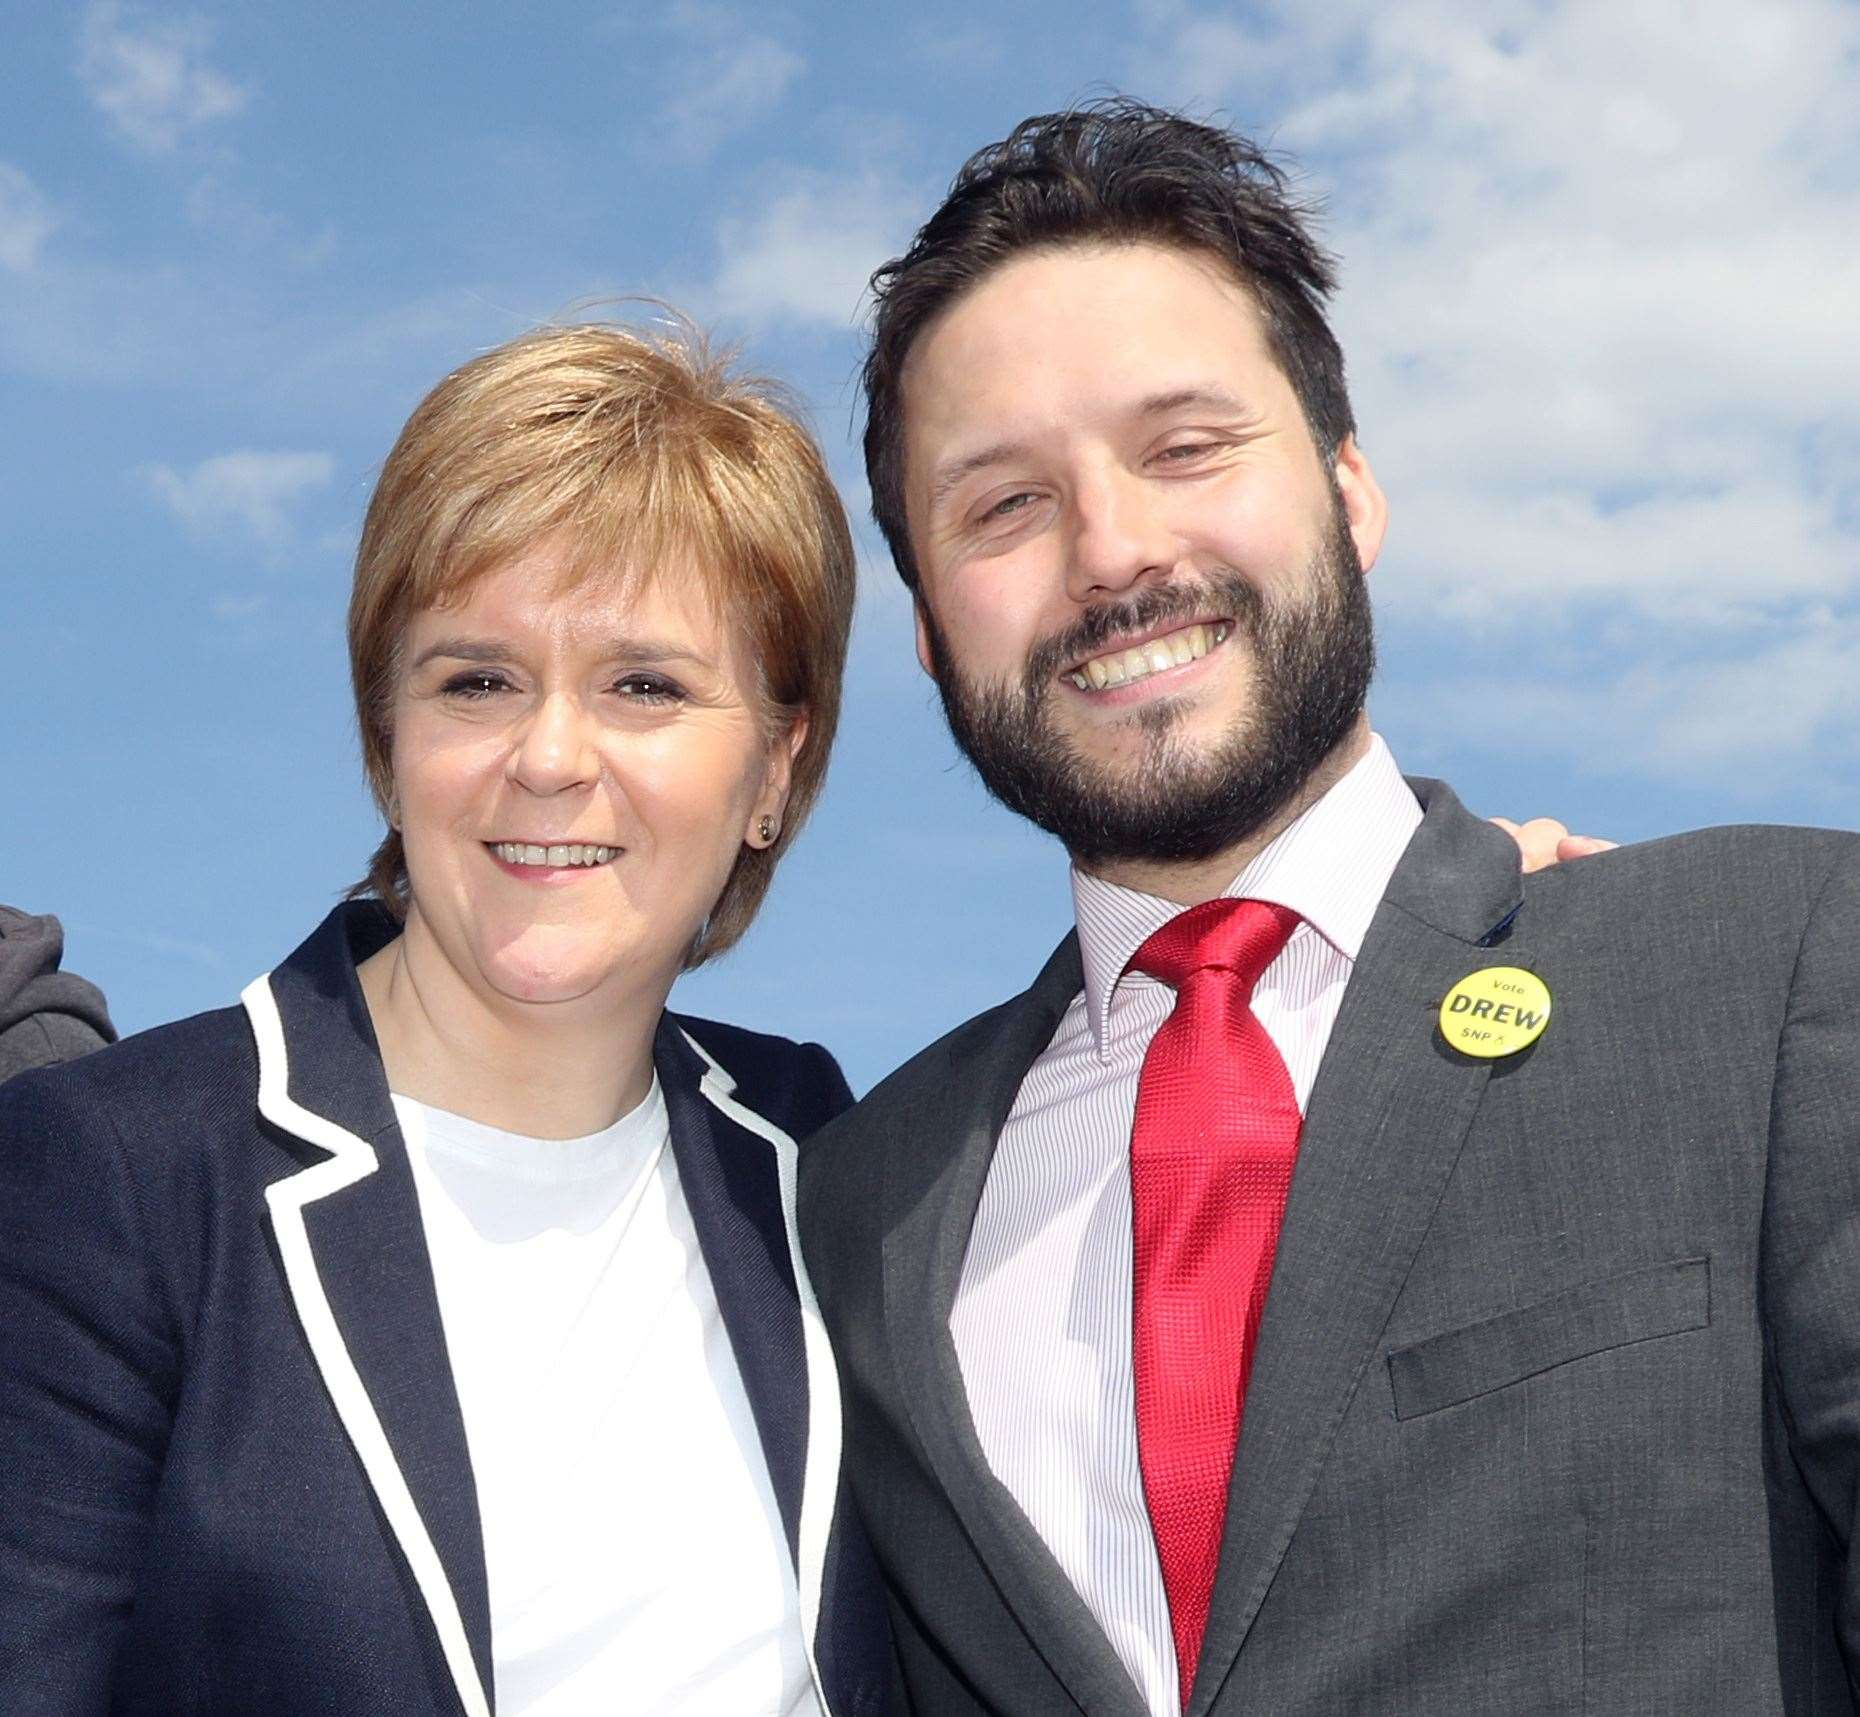 First Minister Nicola Sturgeon and Richard Laird.